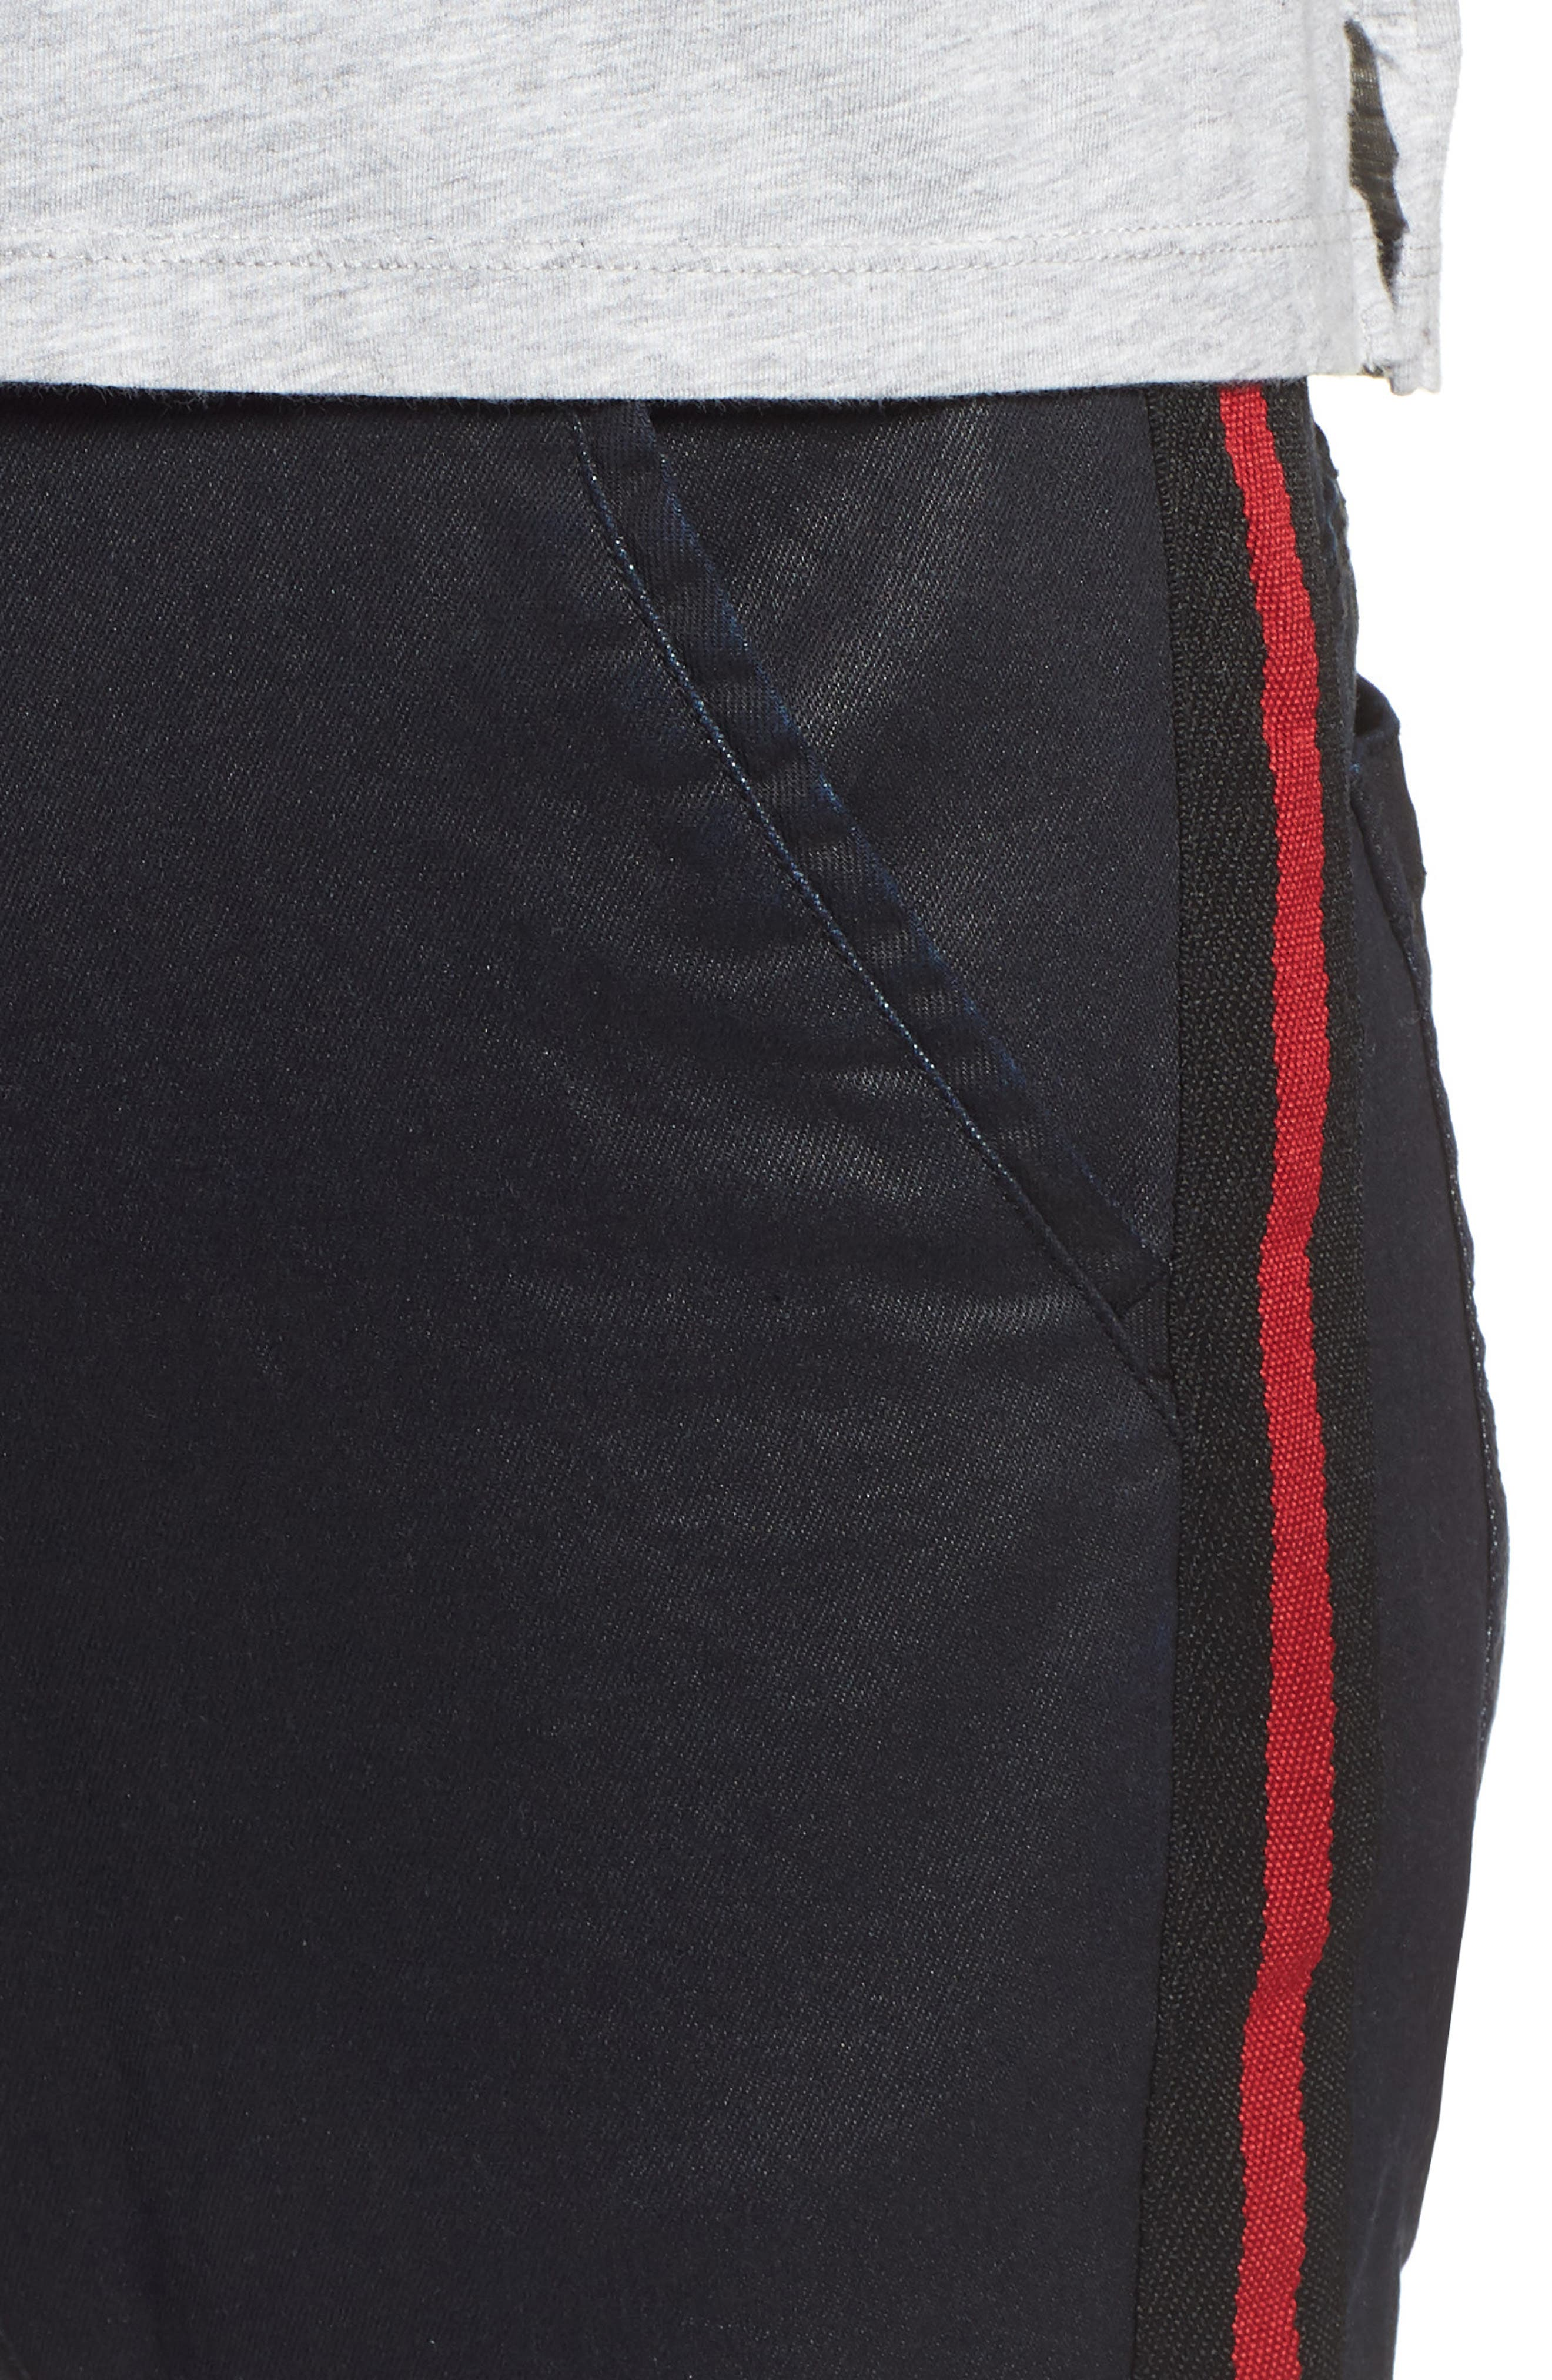 Baseline Taped Skinny Fit Jeans,                             Alternate thumbnail 4, color,                             WAX BLACK RED STRIPE